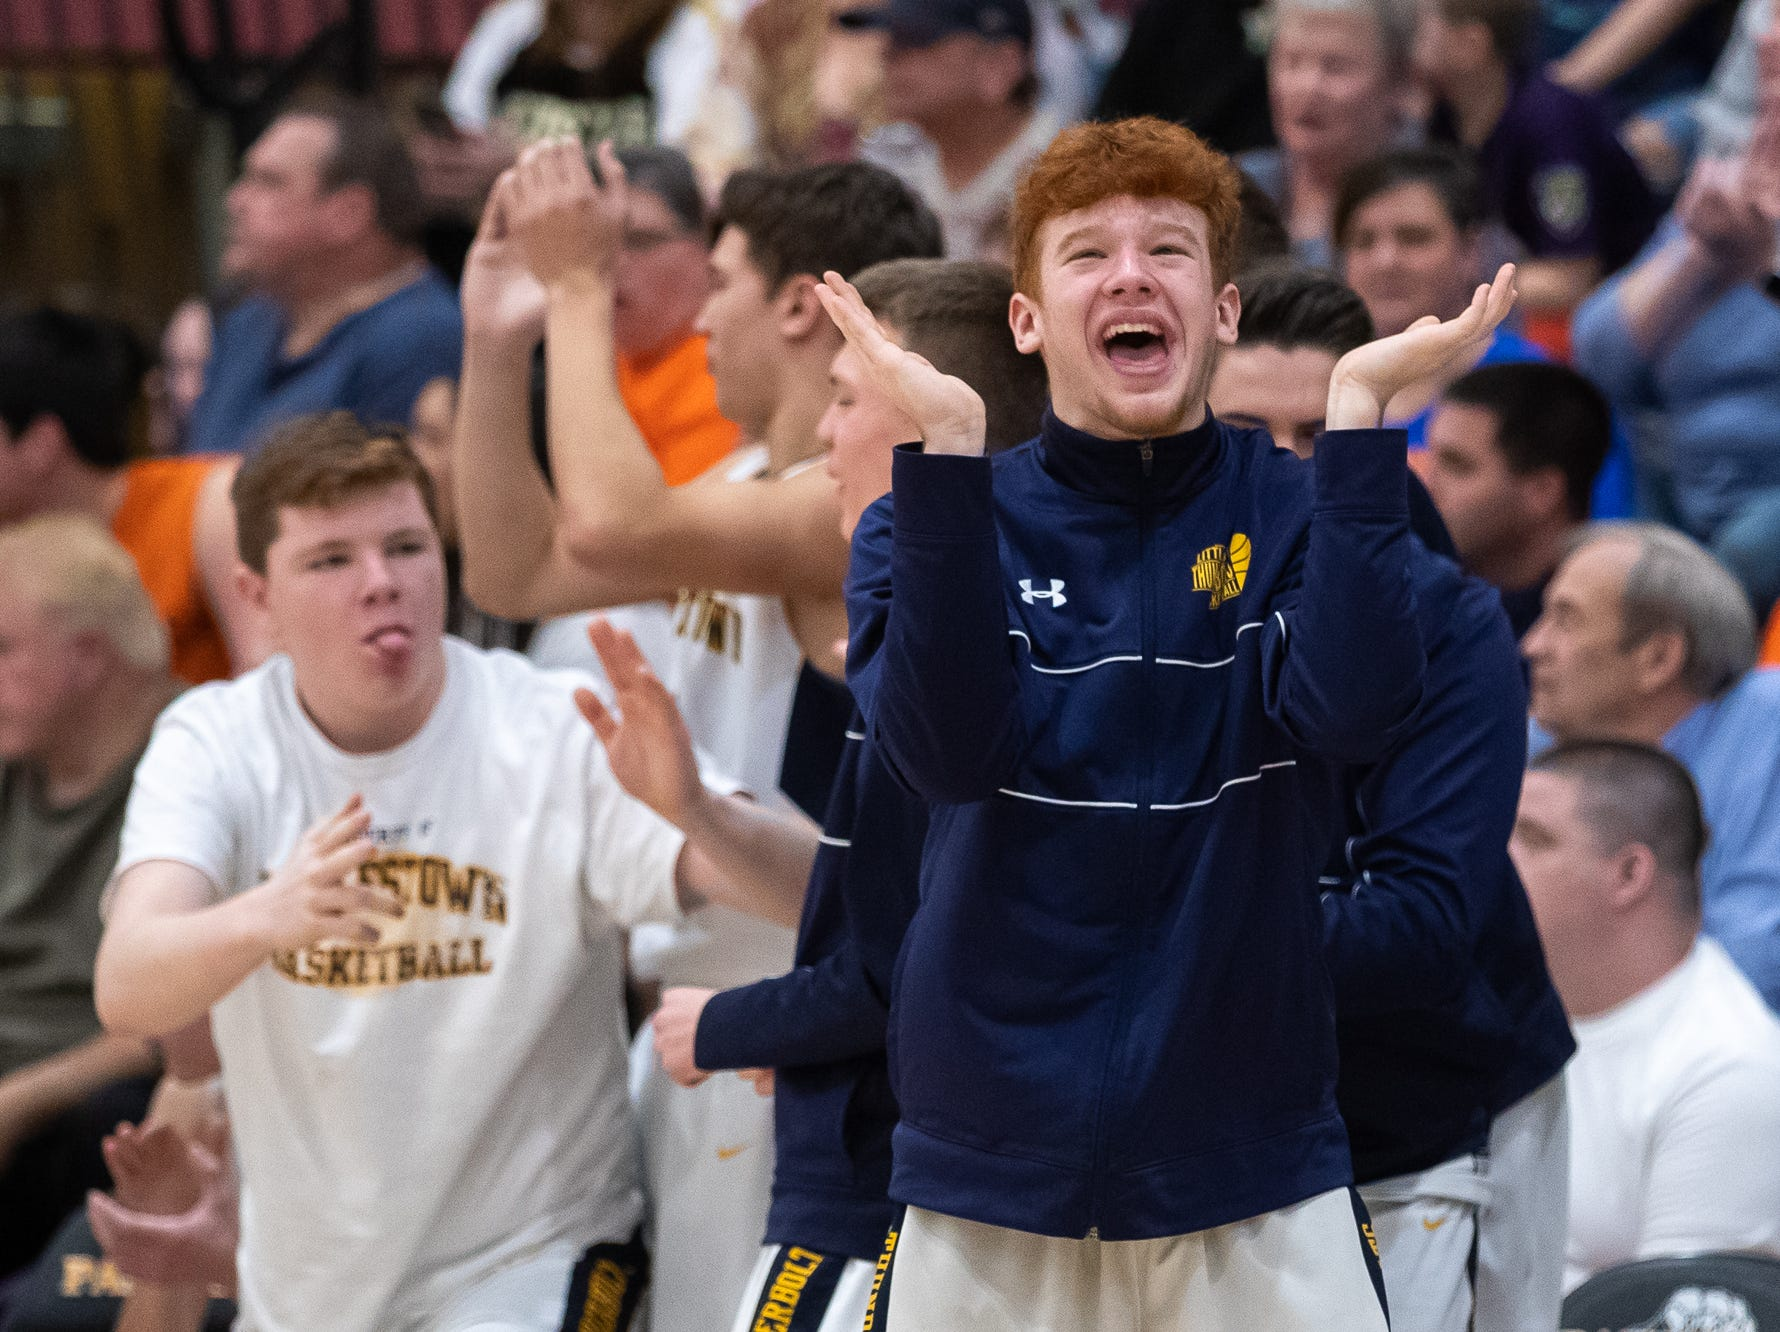 The Littlestown bench reacts to one of their teammates scoring during the second half of the YAIAA boys' basketball quarterfinals between Littlestown and West York, Saturday, Feb. 9, 2019, at Central York High School. The Littlestown Bolts defeated the West York Bulldogs 73-63.